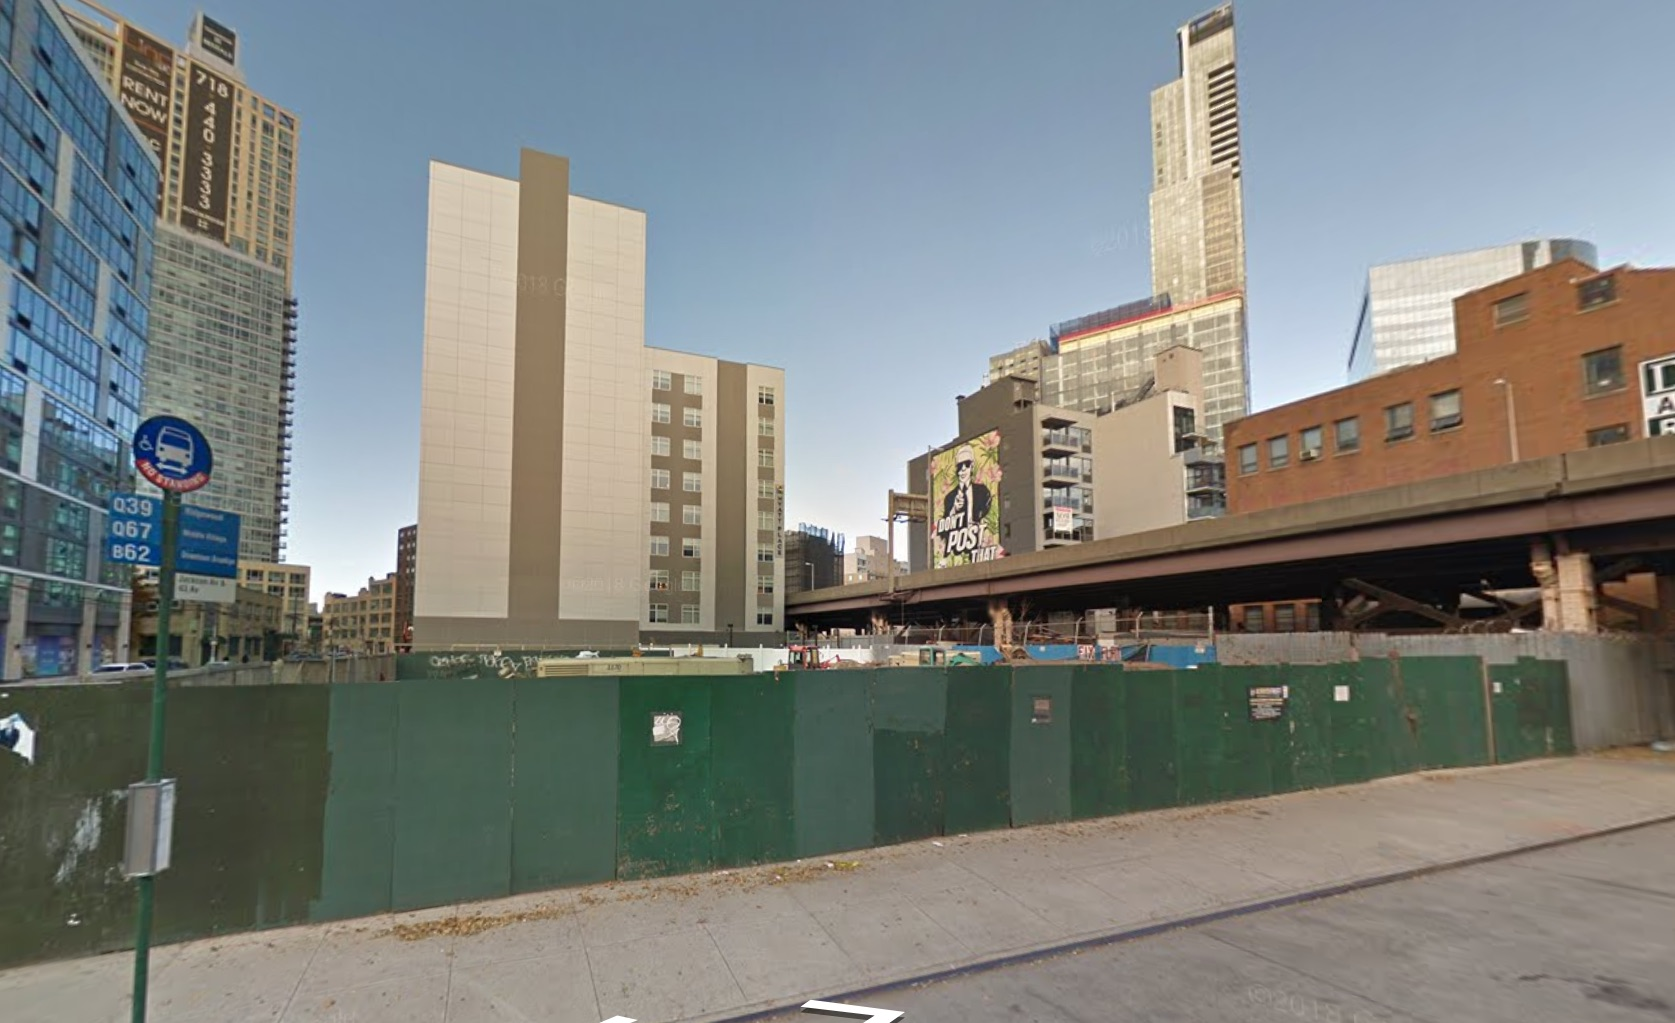 2 Big Towers Likely To Go Up In Lic Following Air Rights Deal Struck